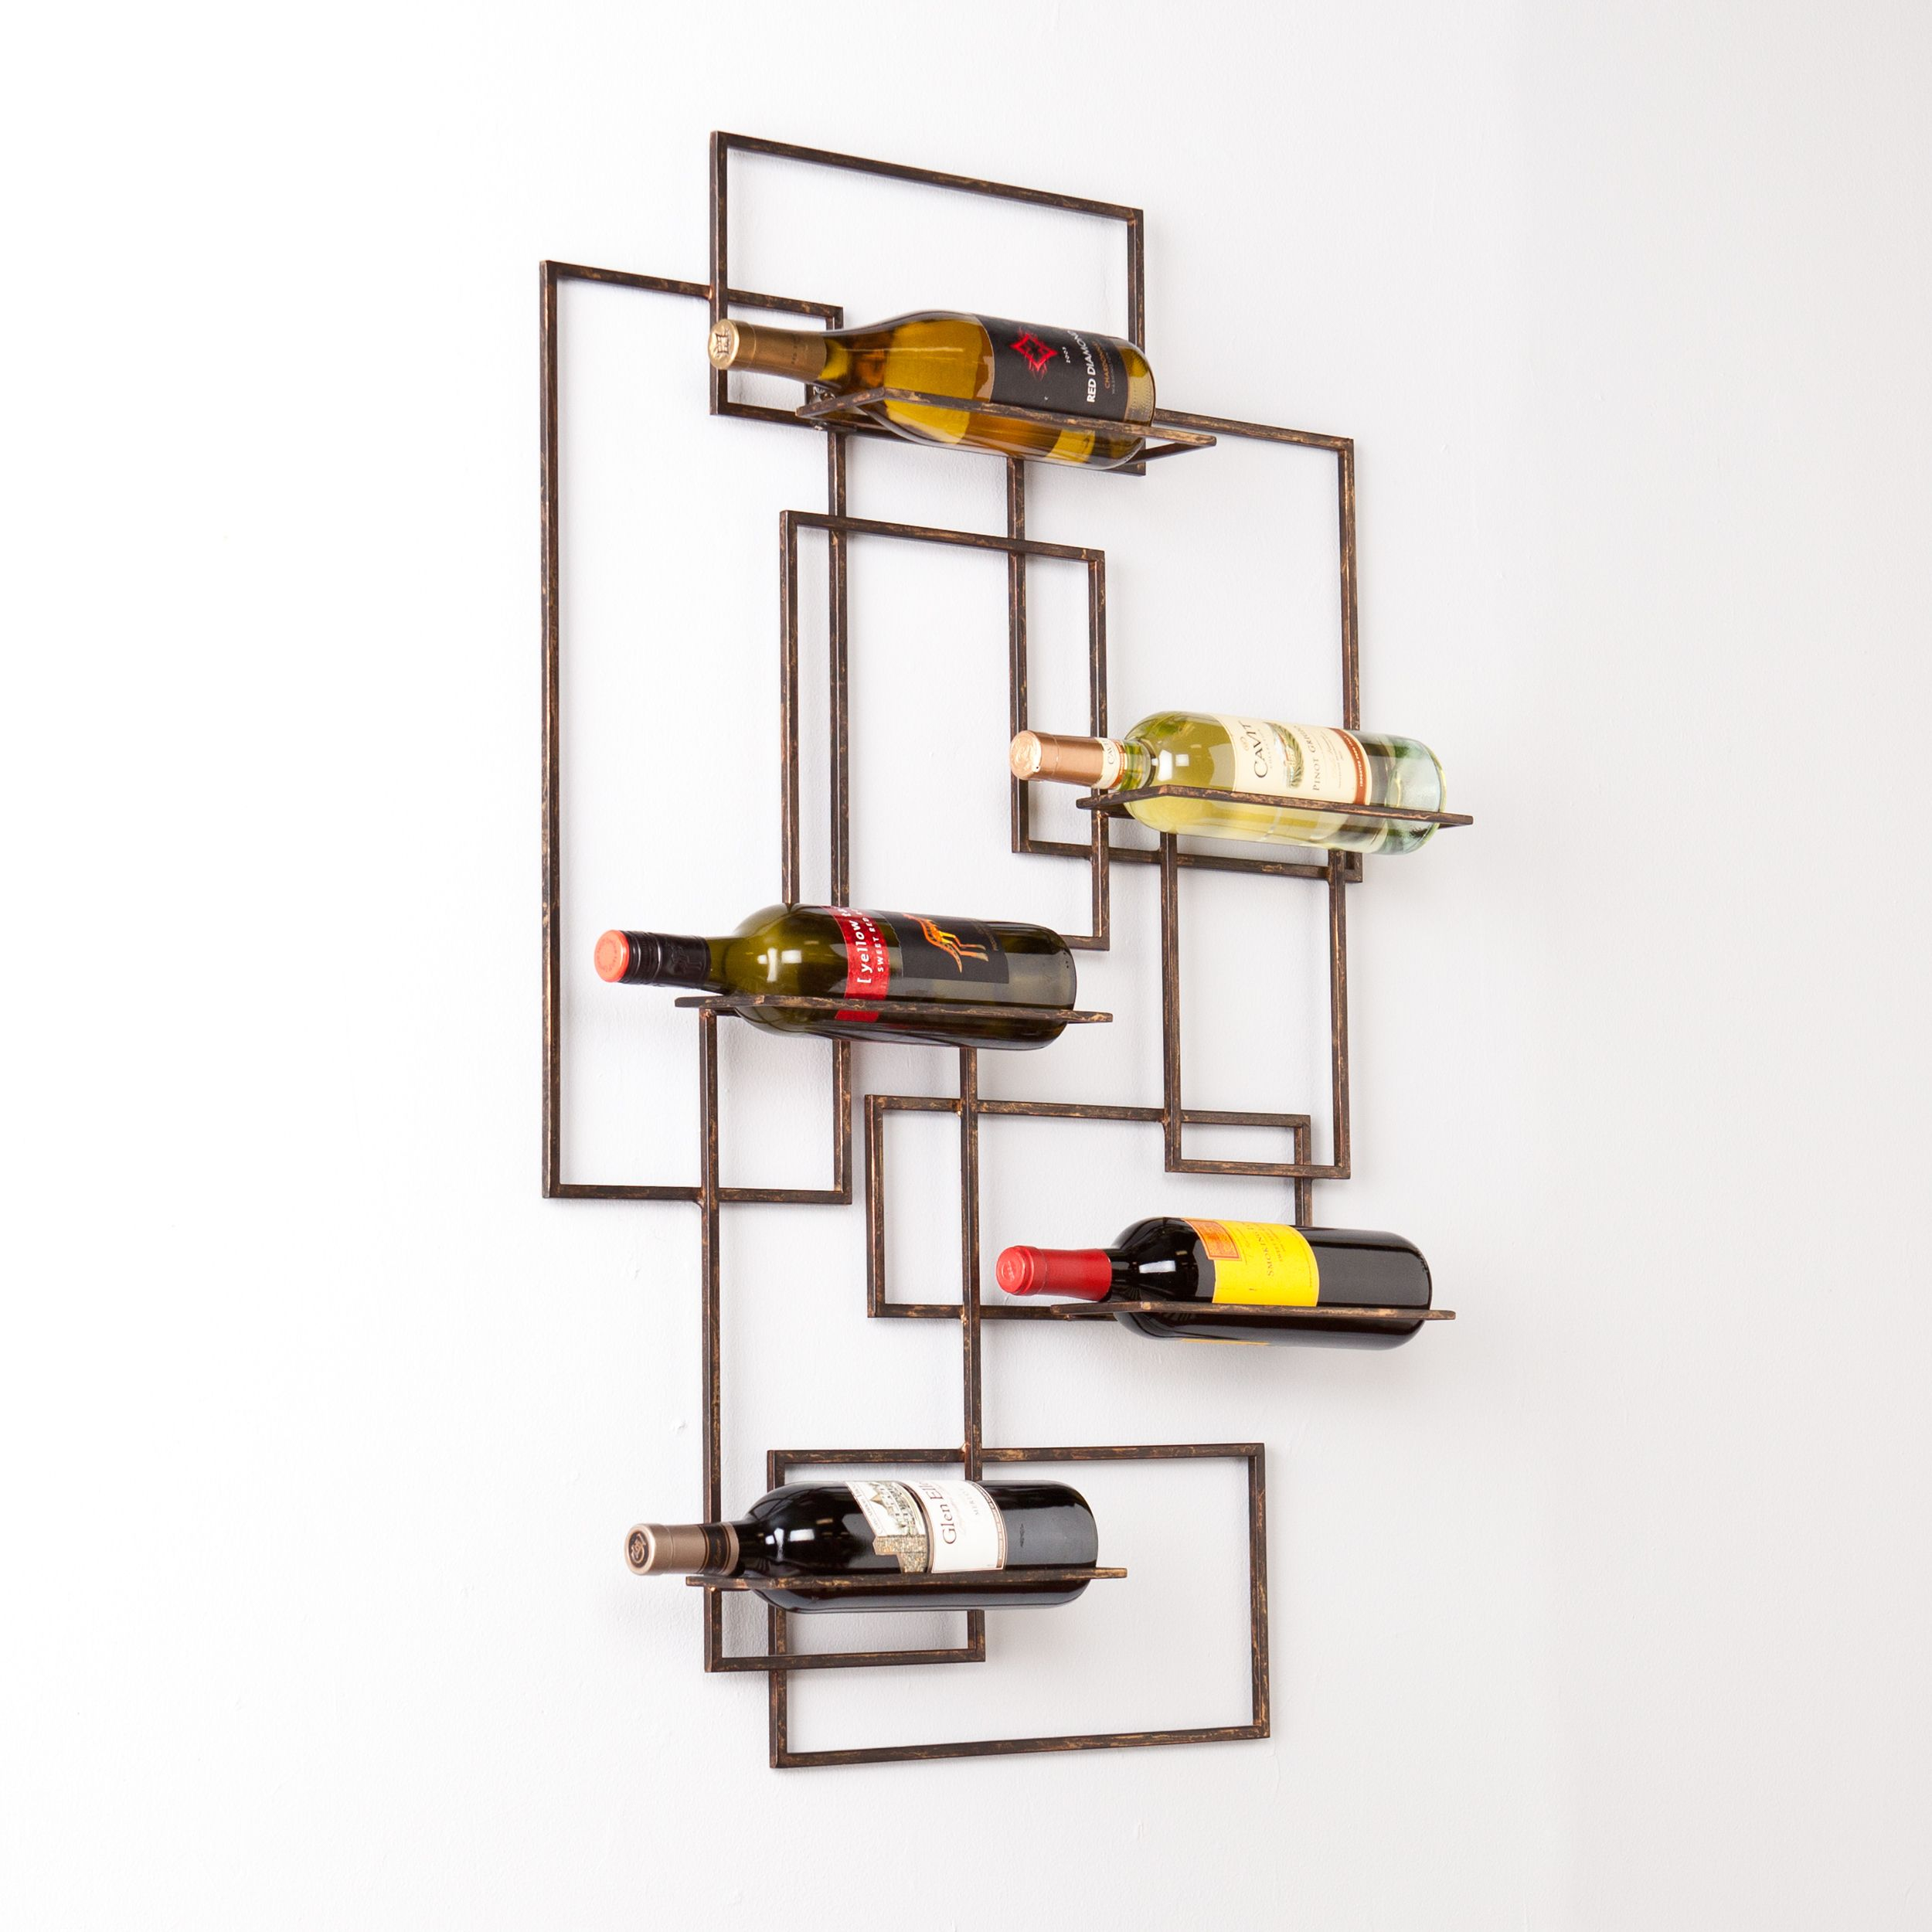 This upton home wine storage wall sculpture features a modern